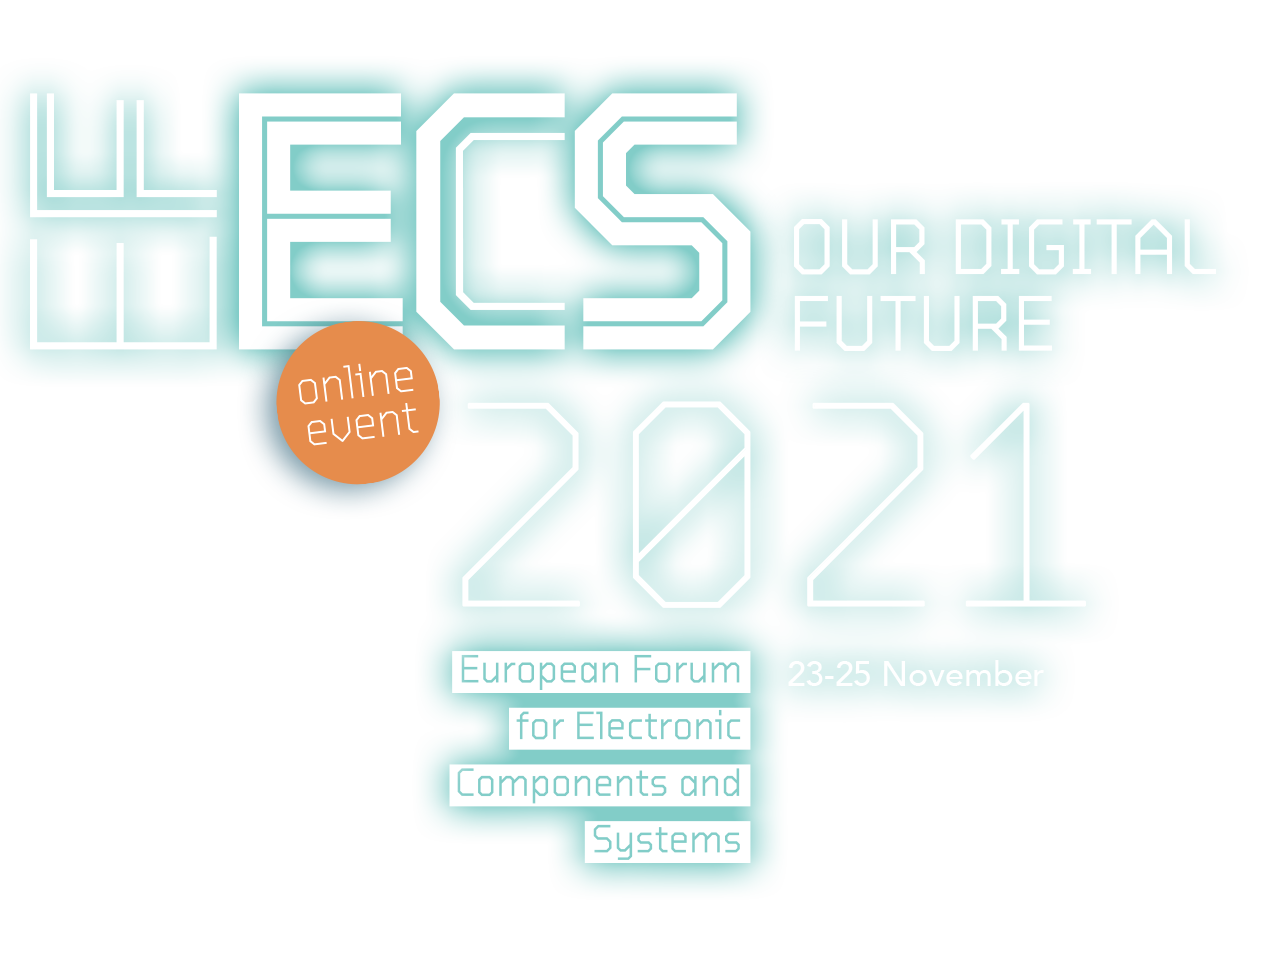 EFECS 2020 - European Forum for Electronic Components and Systems